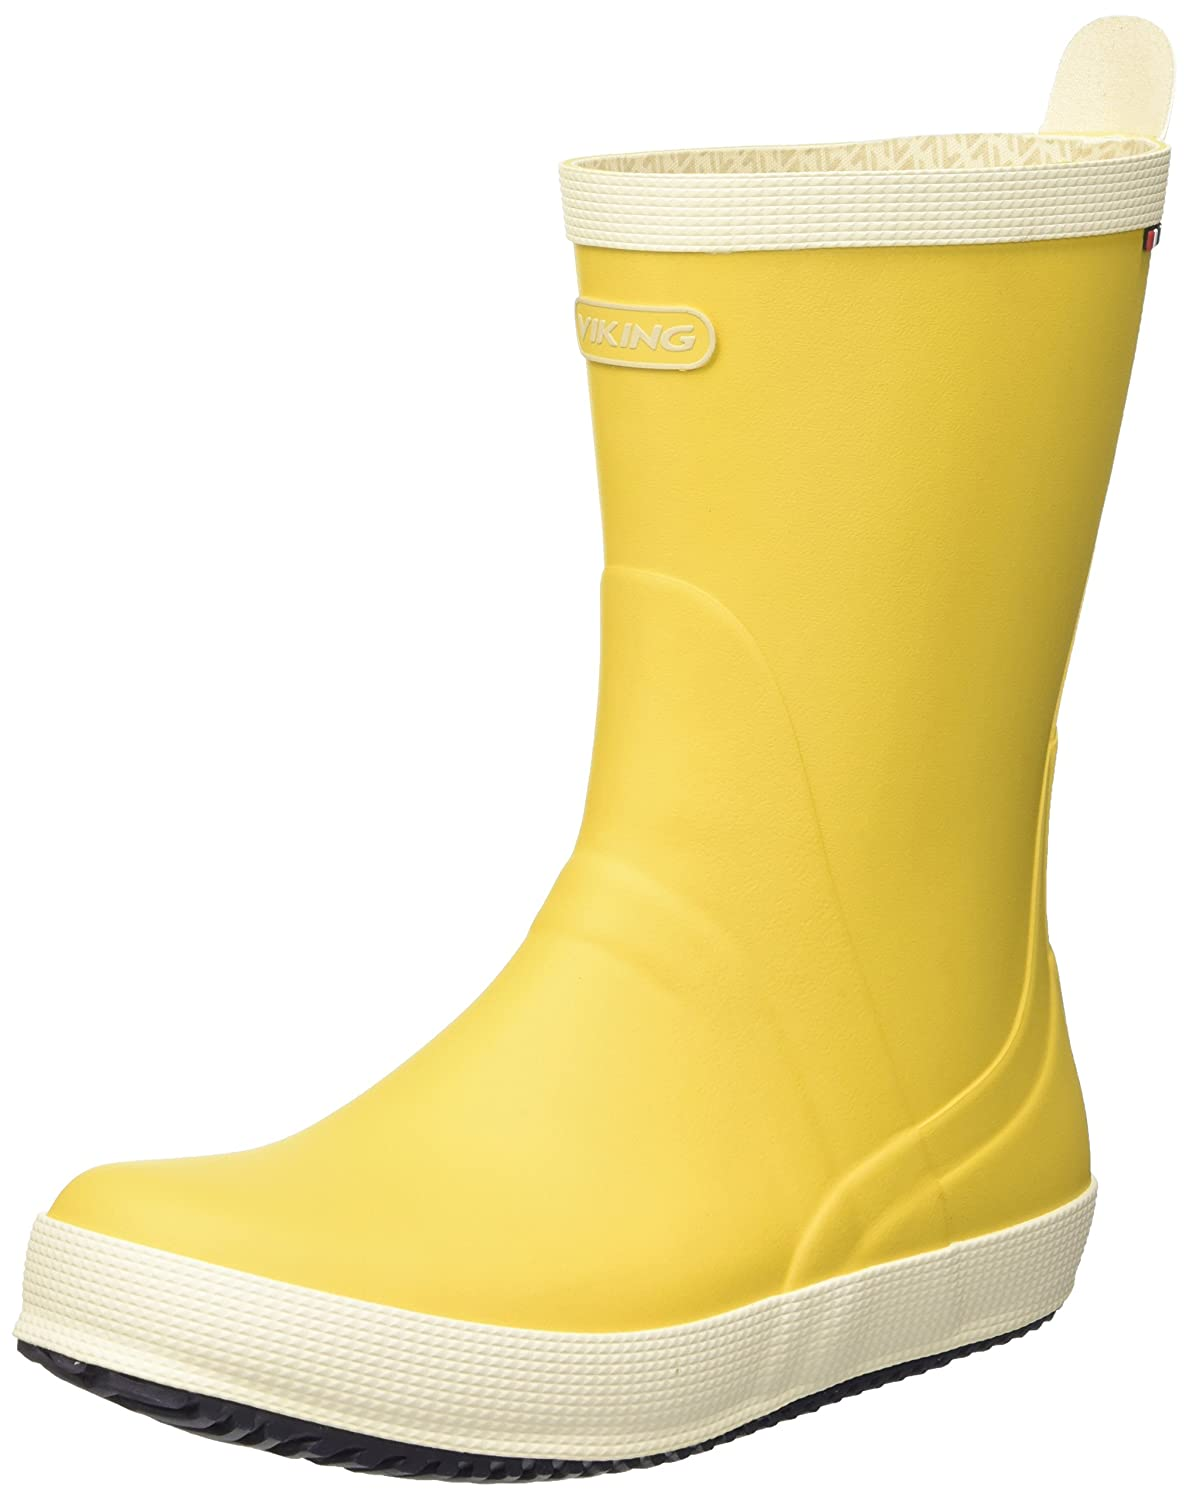 Viking Jaune B01DXX7S4Q Seilas, Viking Bottes de Pluie Mixte Adulte Jaune - Gelb (Yellow 13) dd17b7b - therethere.space